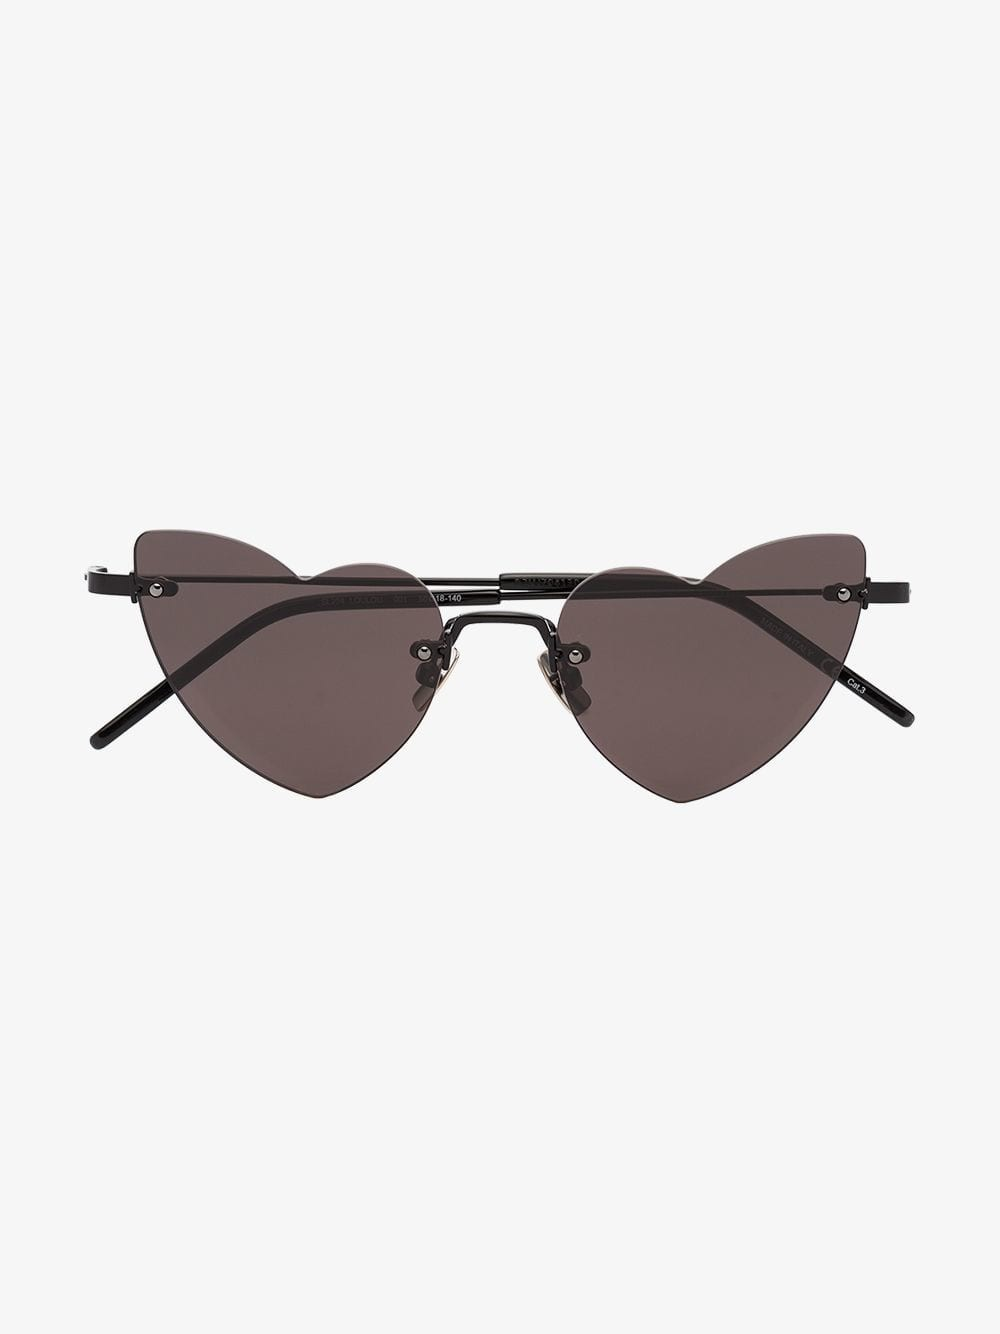 Saint Laurent Eyewear New Wave Lou Lou Heart sunglasses in black